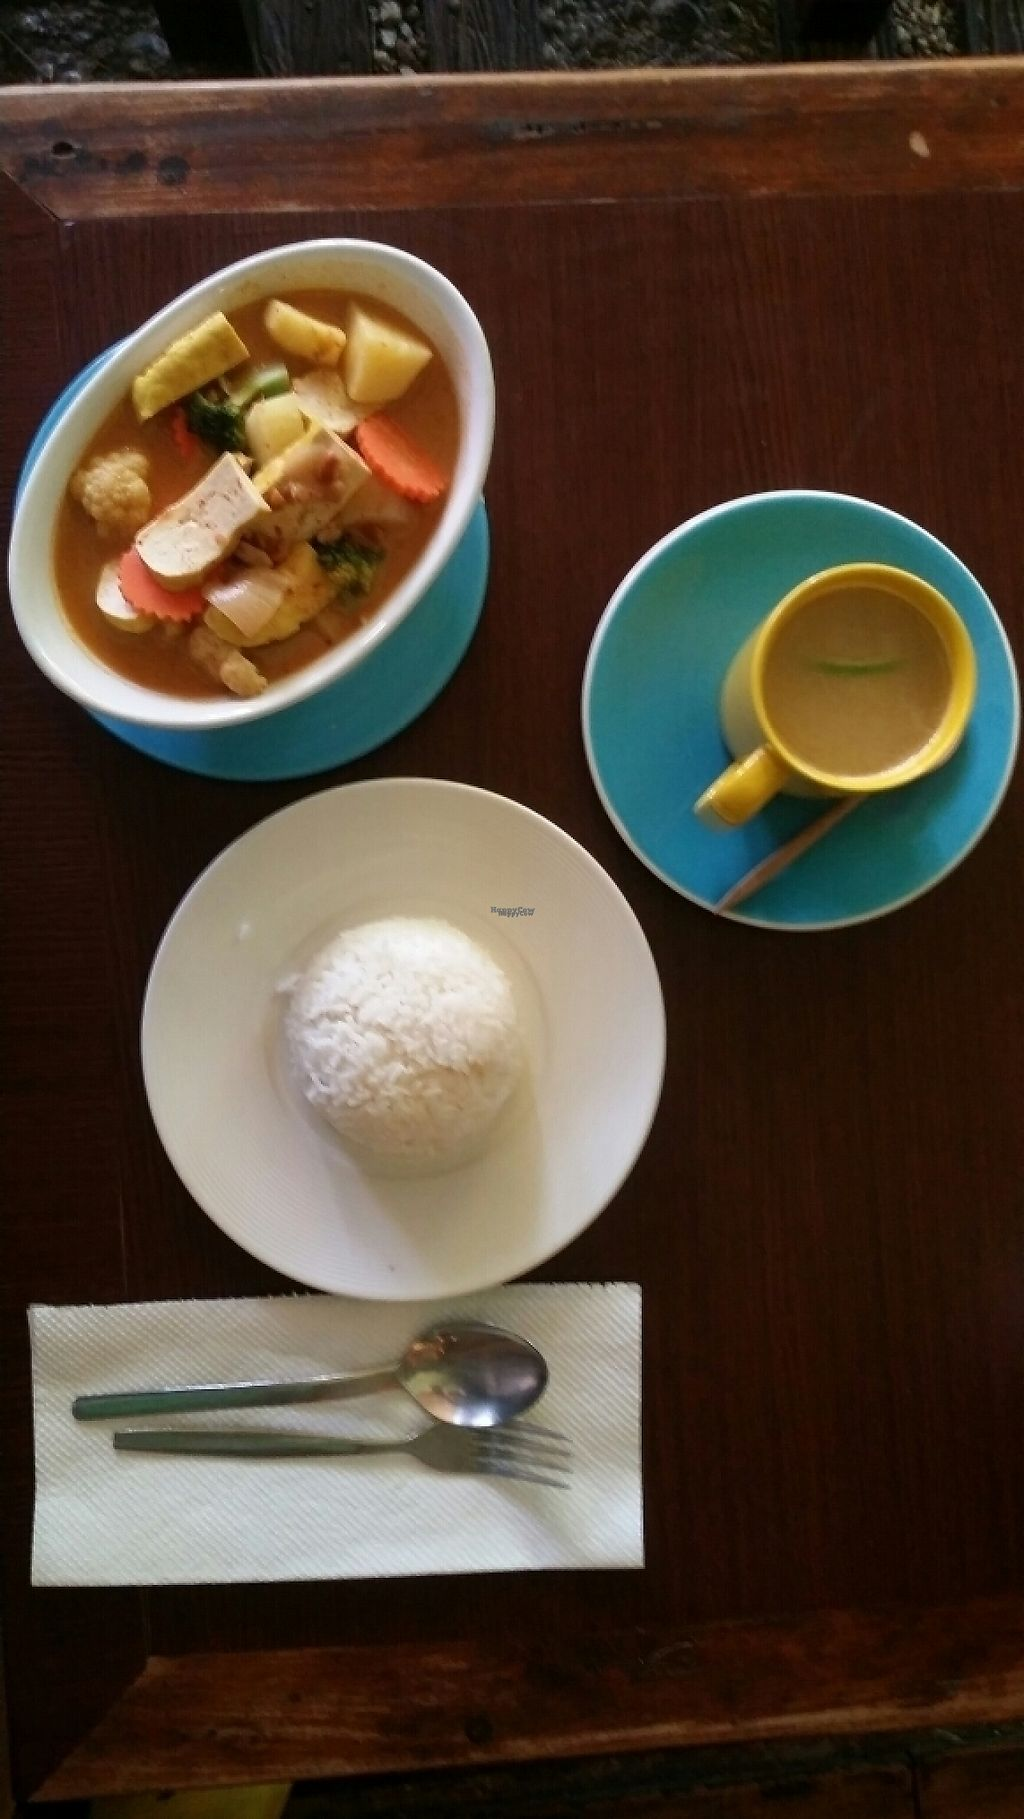 "Photo of Dada Kafe  by <a href=""/members/profile/Mike%20Munsie"">Mike Munsie</a> <br/>massaman curry with tofu and rice <br/> March 16, 2017  - <a href='/contact/abuse/image/32553/236964'>Report</a>"